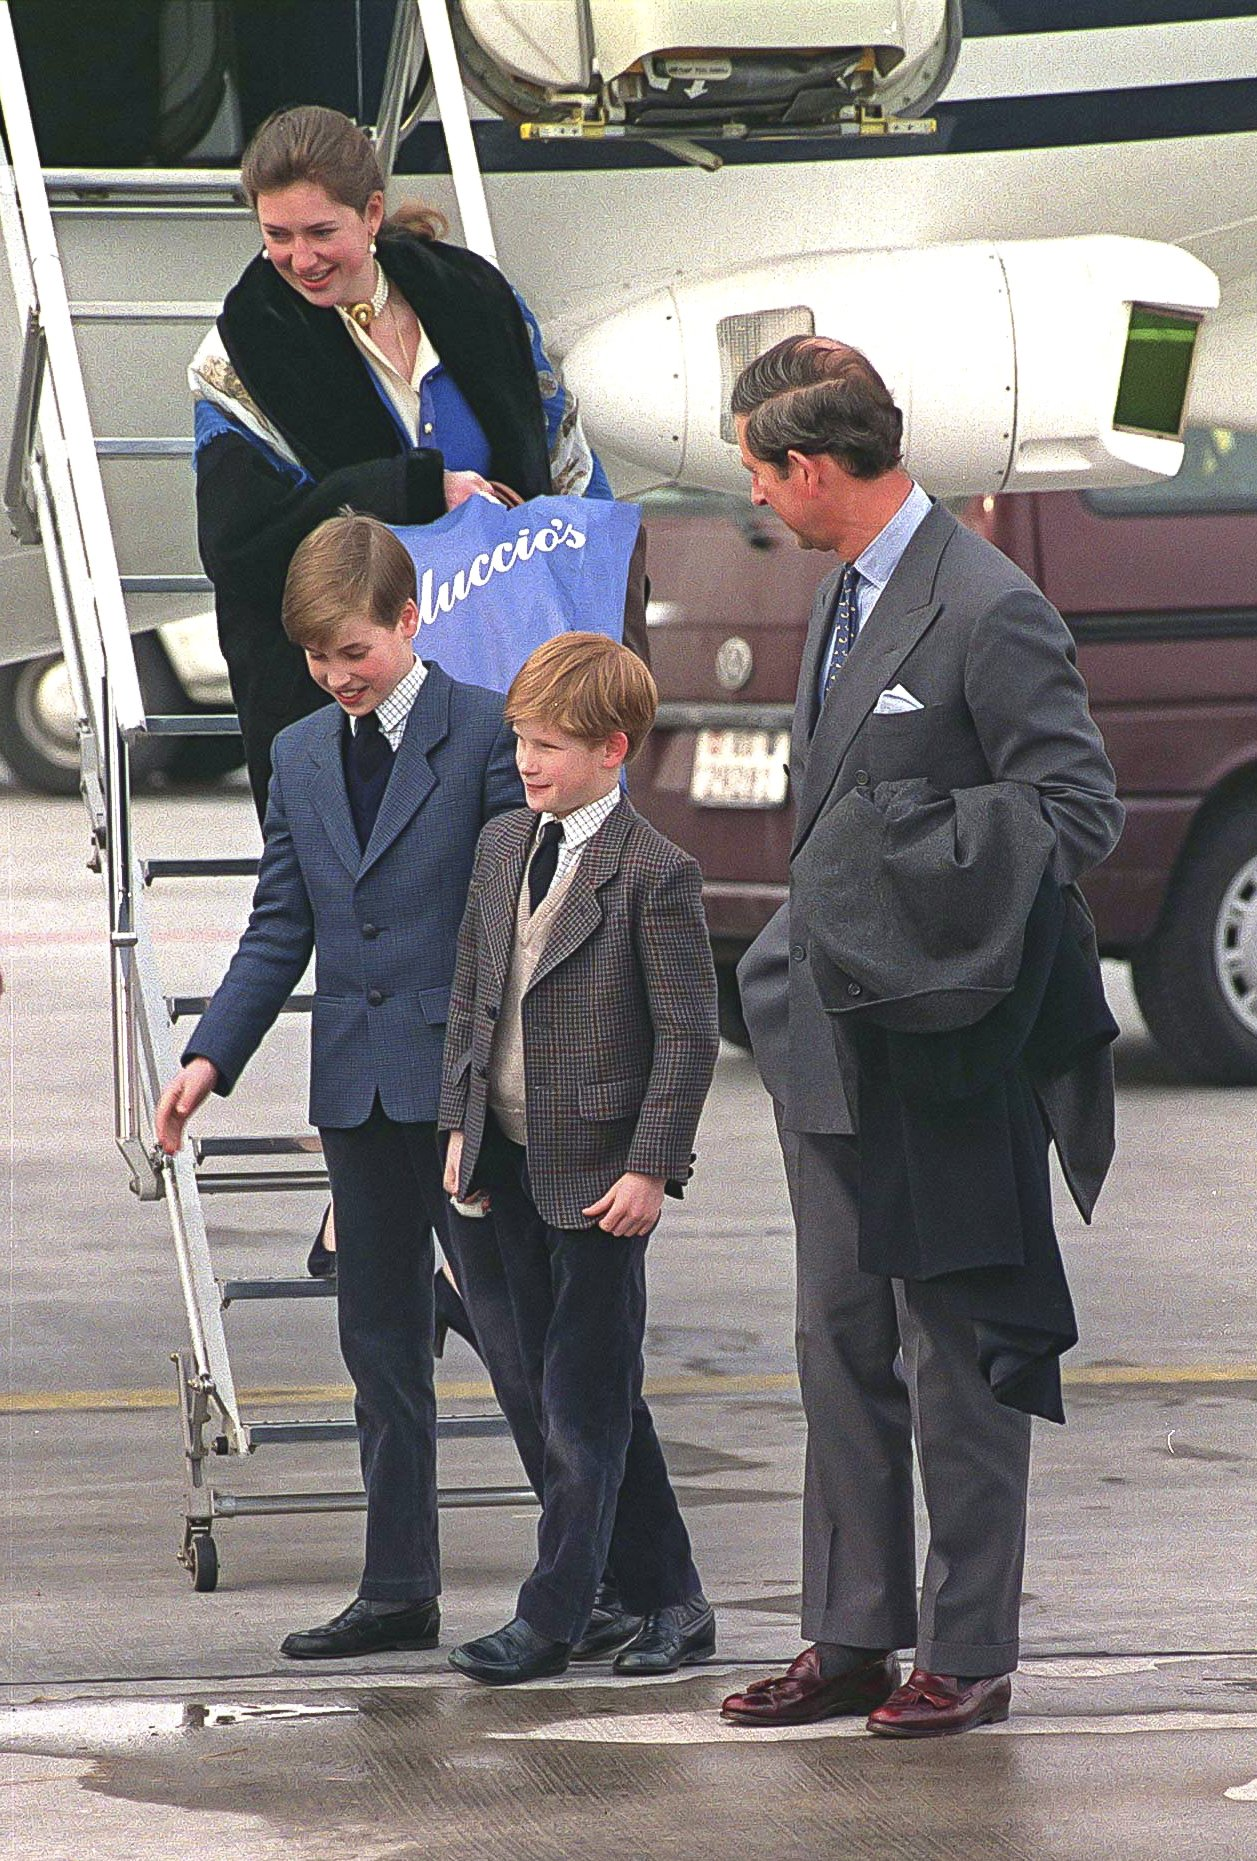 Prince Charles and Prince Harry standing with father Princes Charles and their Royal Nanny Tiggy Legge-Bourke at the Zurich Airport on February 17, 1994 | Photo: Getty Images